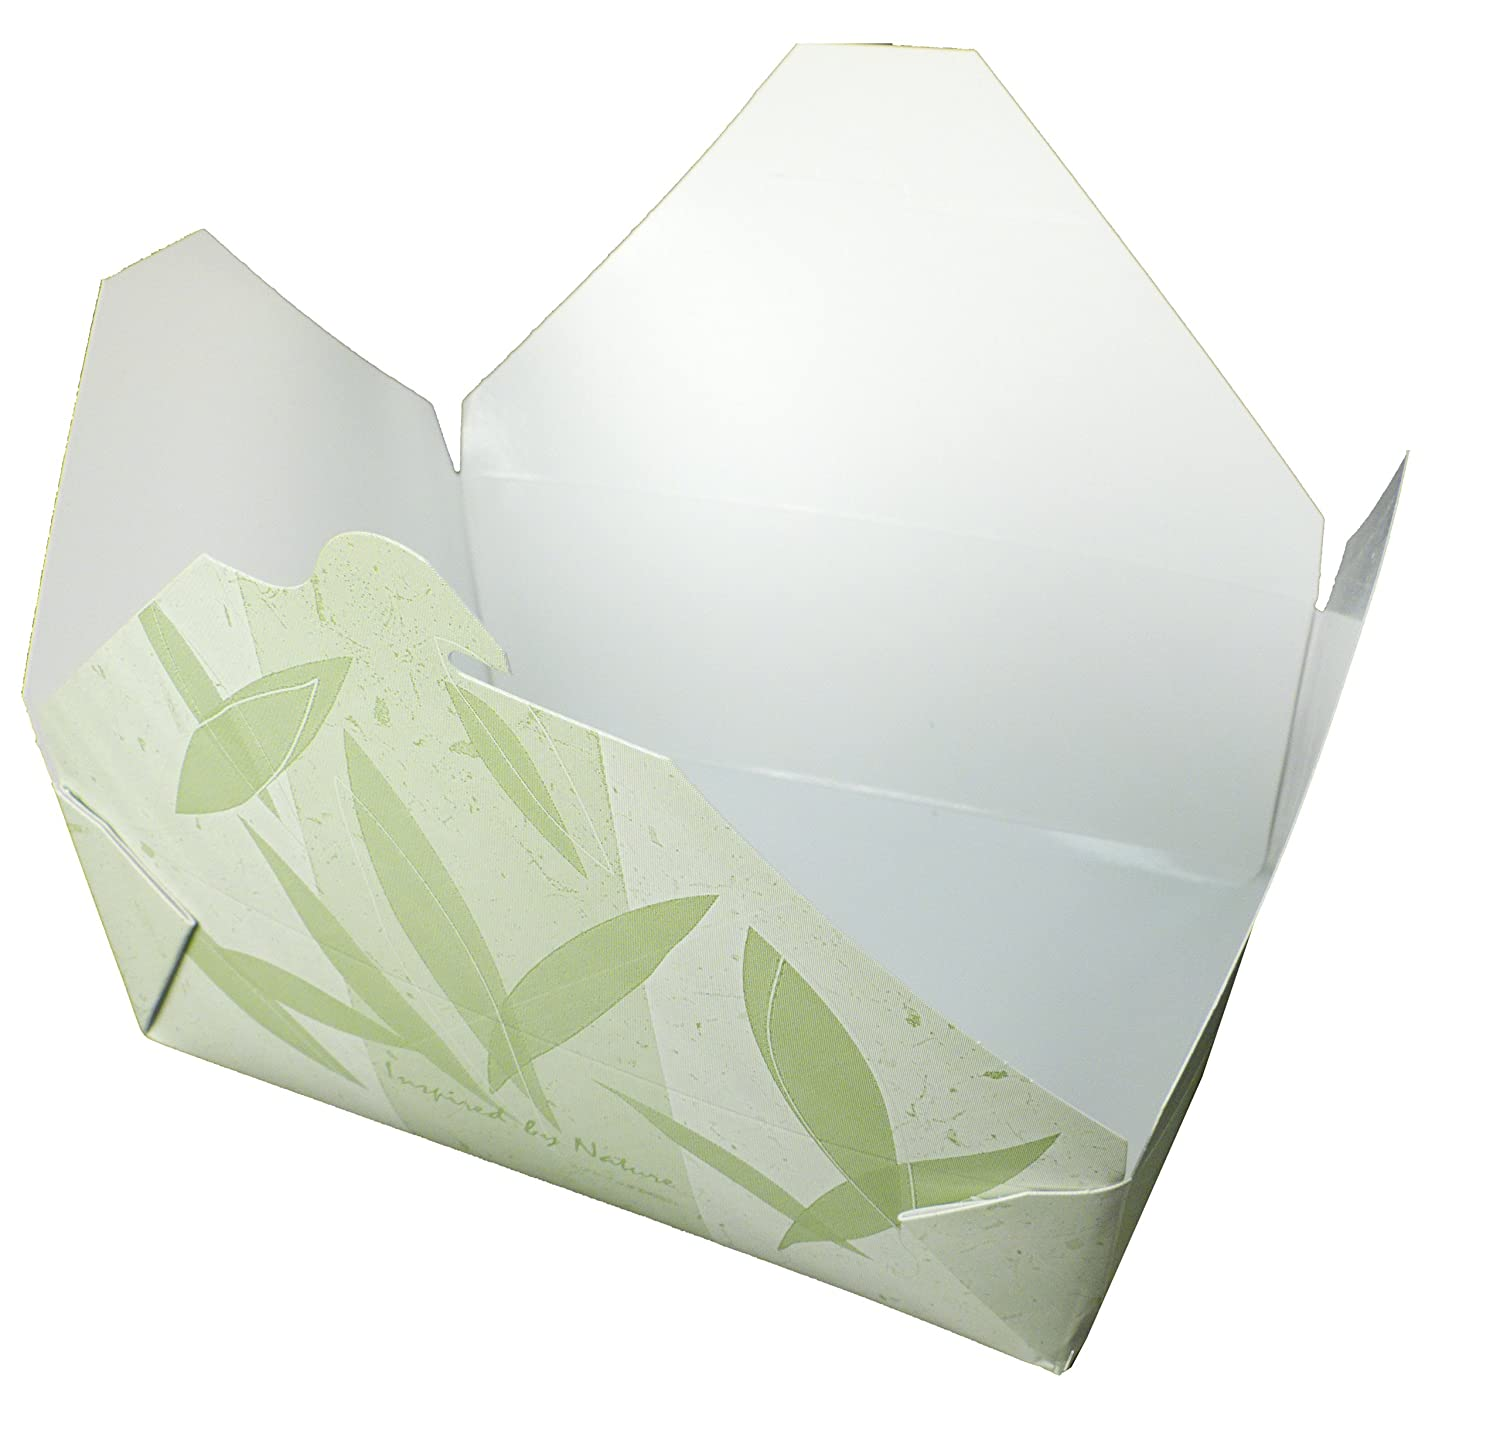 Fold-Pak Bio-Plus Earth 04BPSONOMM Sonoma Print Paper Carry-Out//To-Go Container Case of 160 96-Fluid Ounce Capacity 7-3//4 Length x 5-1//2 Width x 3-1//2 Height